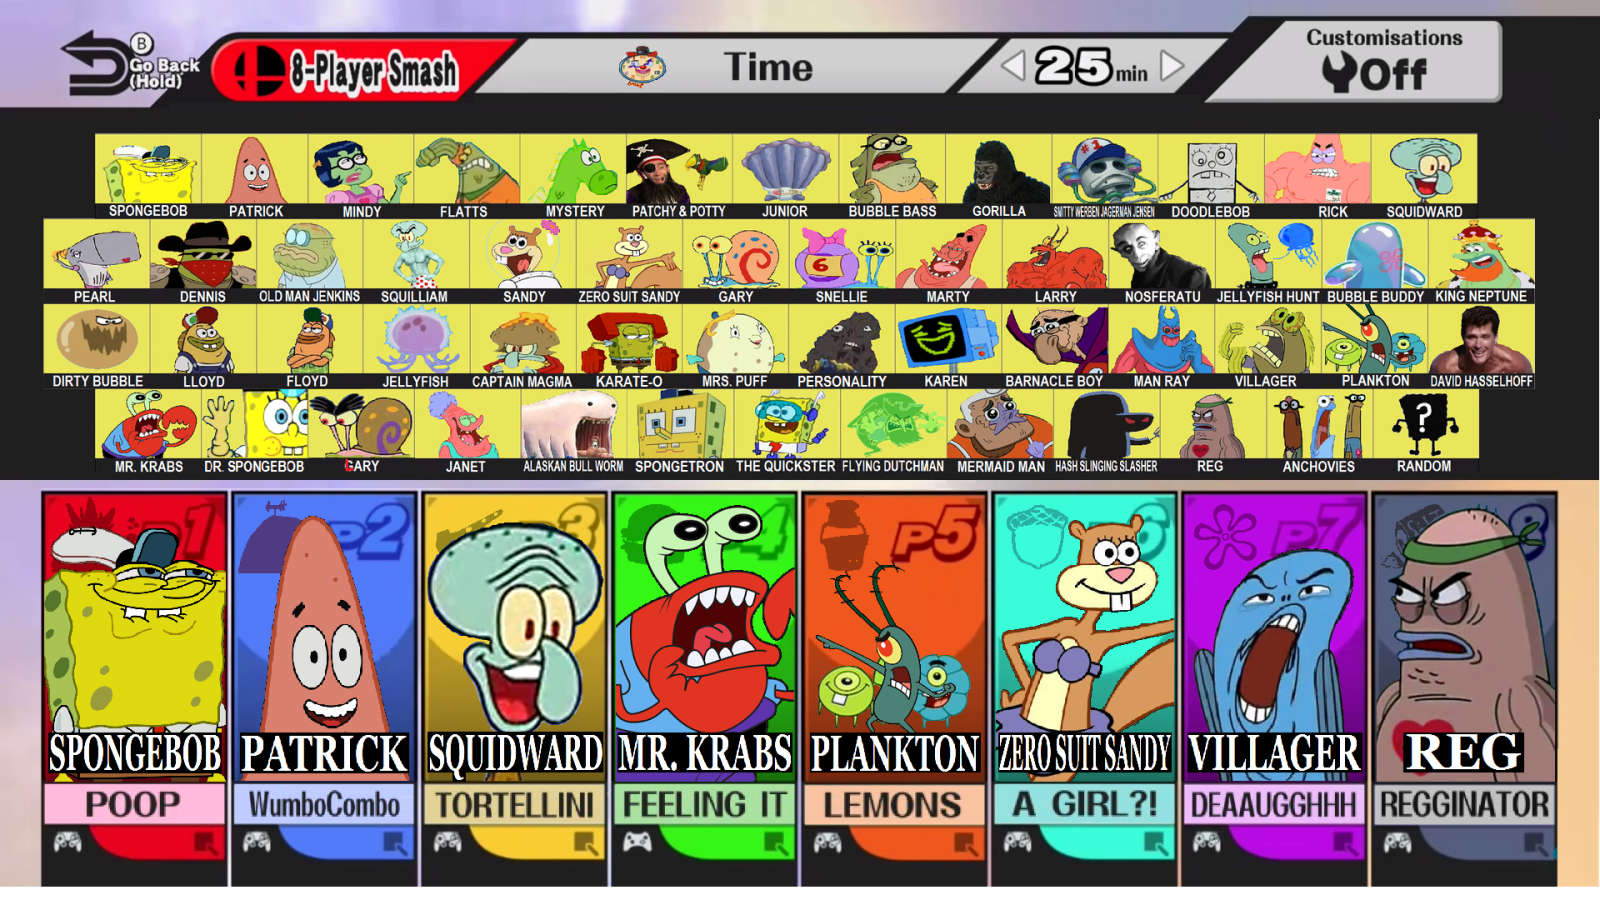 Spongebros For Wii U Super Smash Brothers Know Your Meme